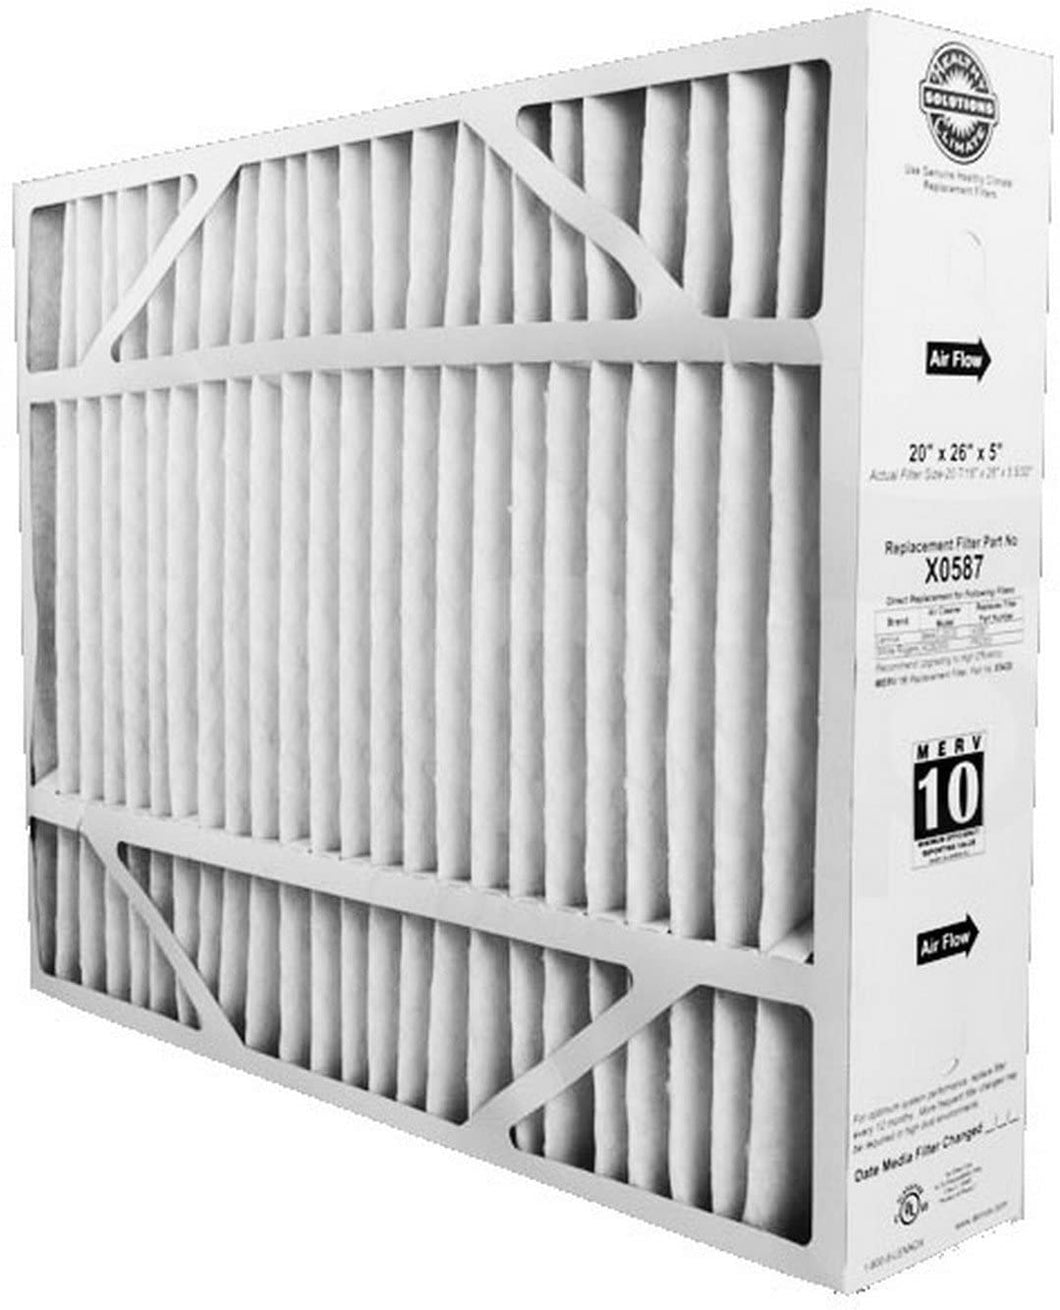 Lennox Genuine OEM Replacement Media Filter X0587 - Merv 11